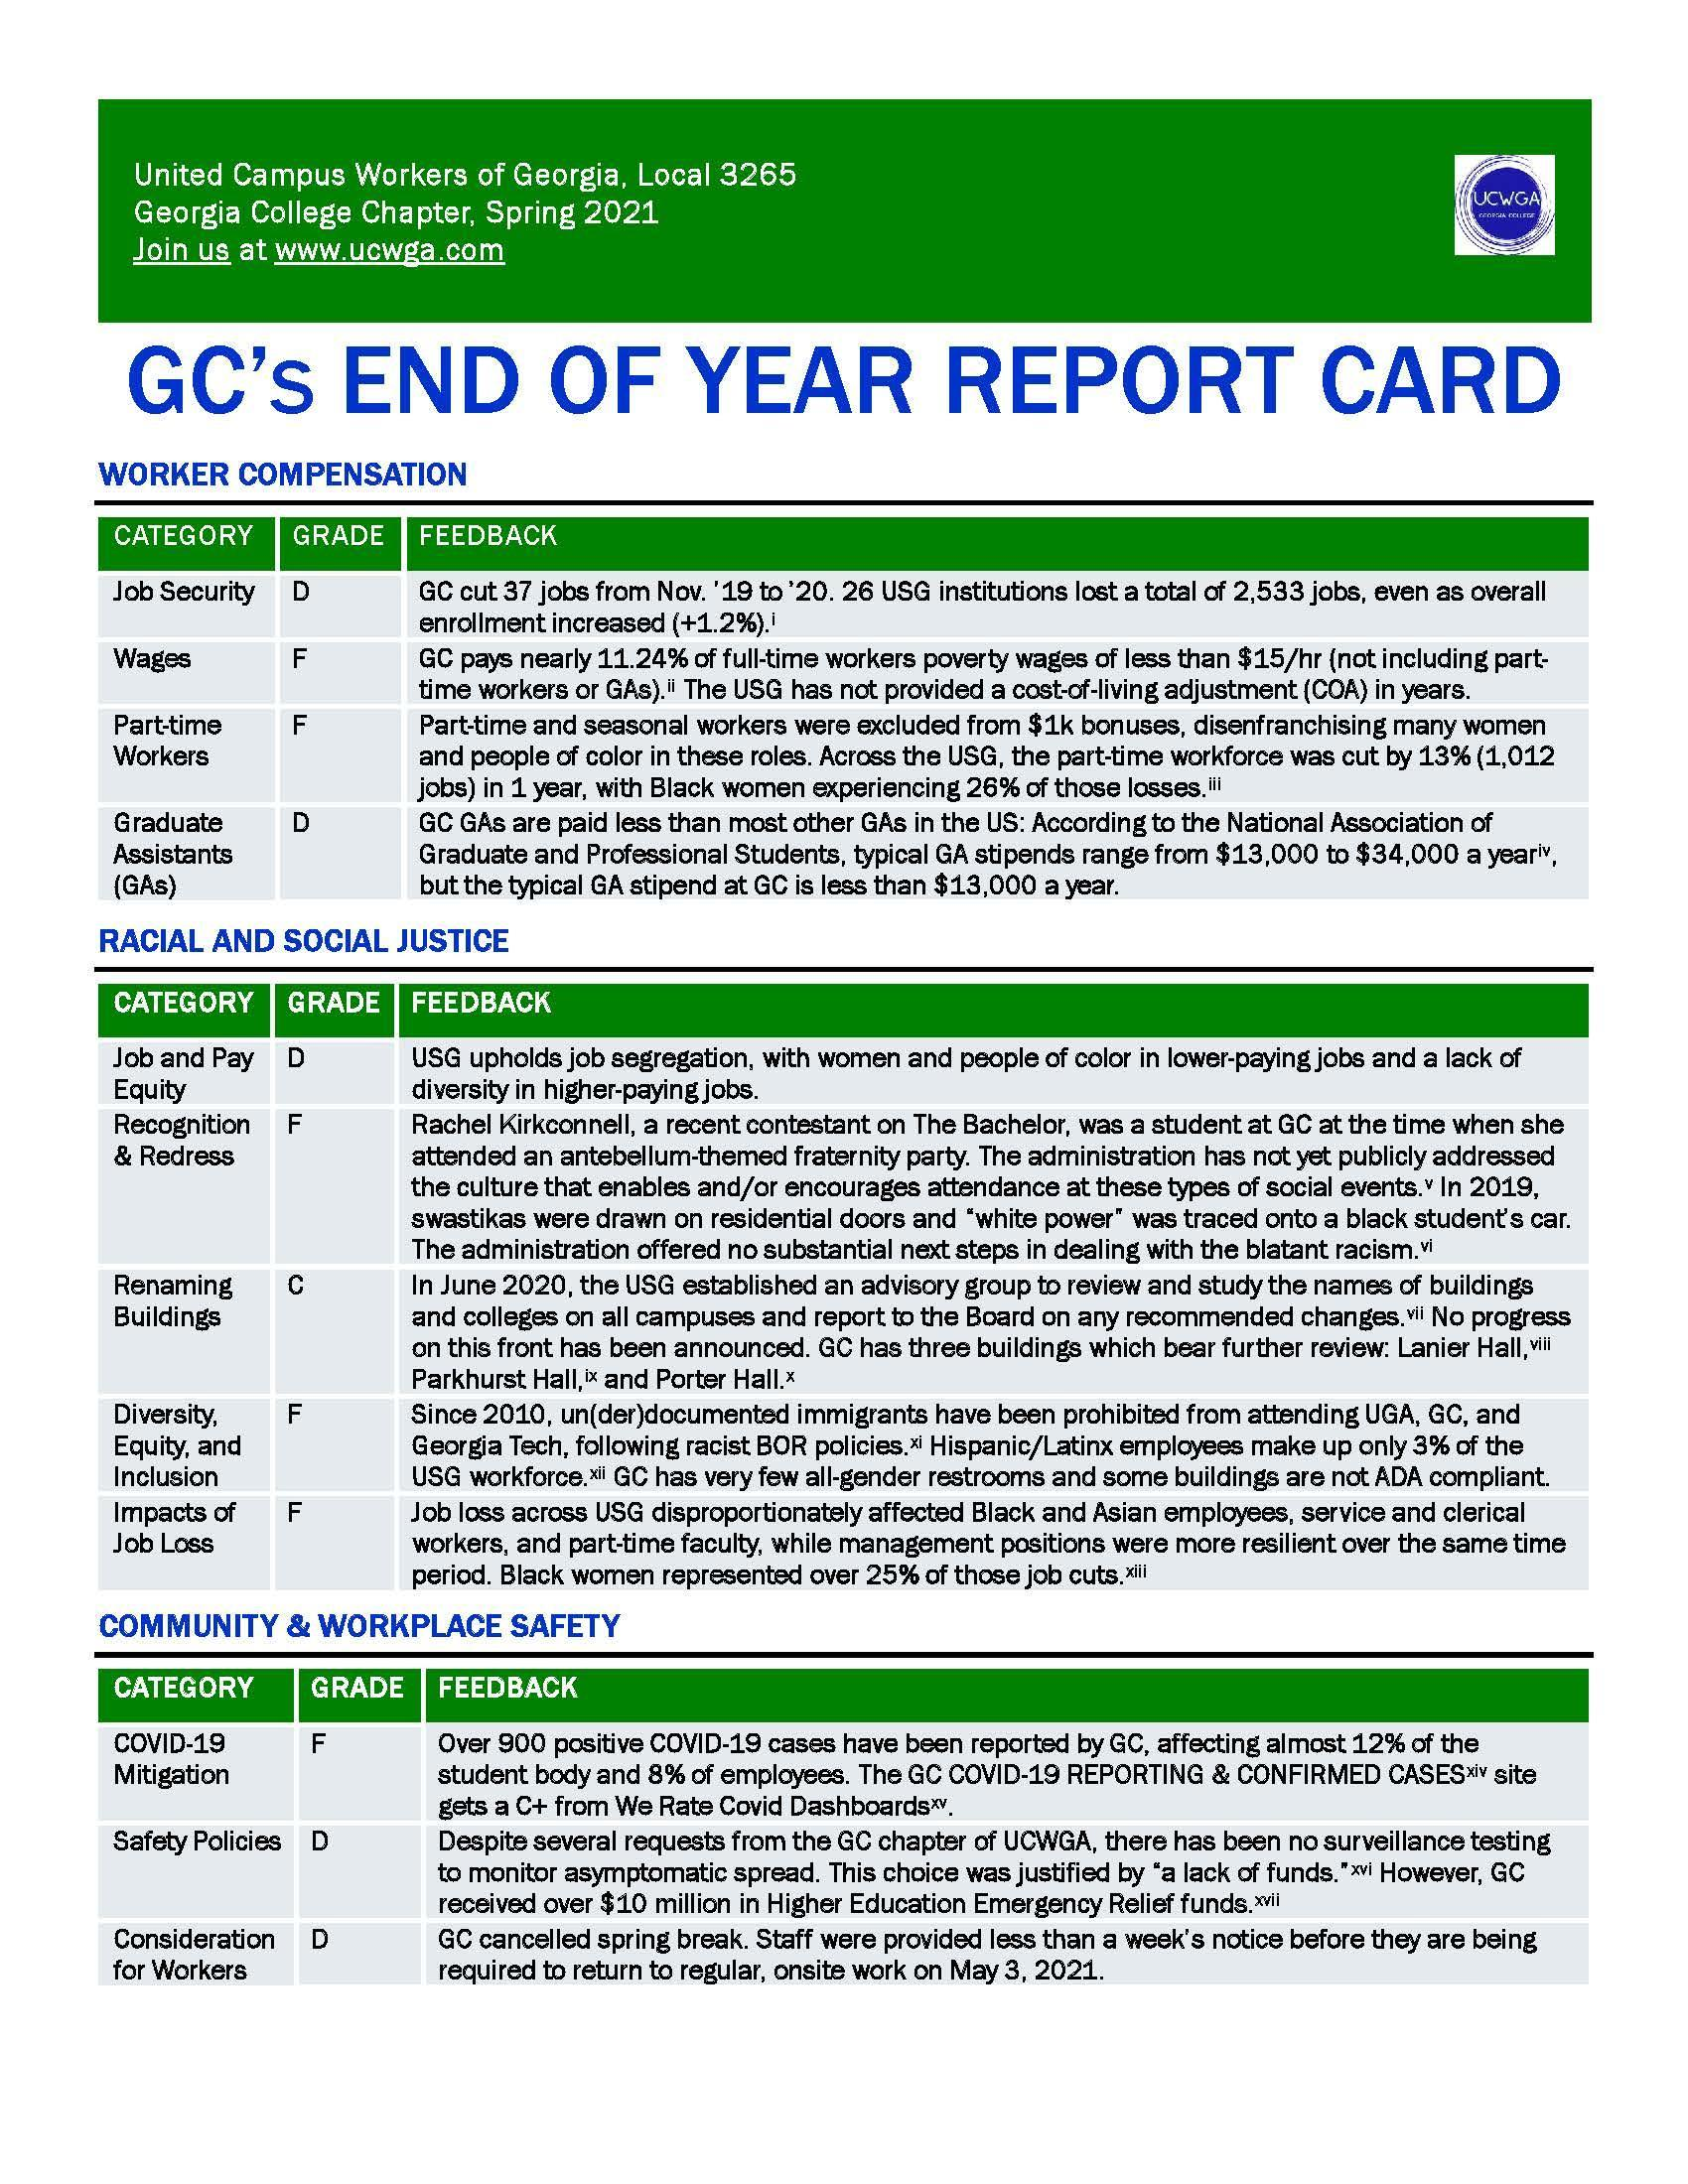 A report card detailing Georgia College's scores in categories of worker compensation, racial and social justice, and workplace and community safety. The grades range from C to F.